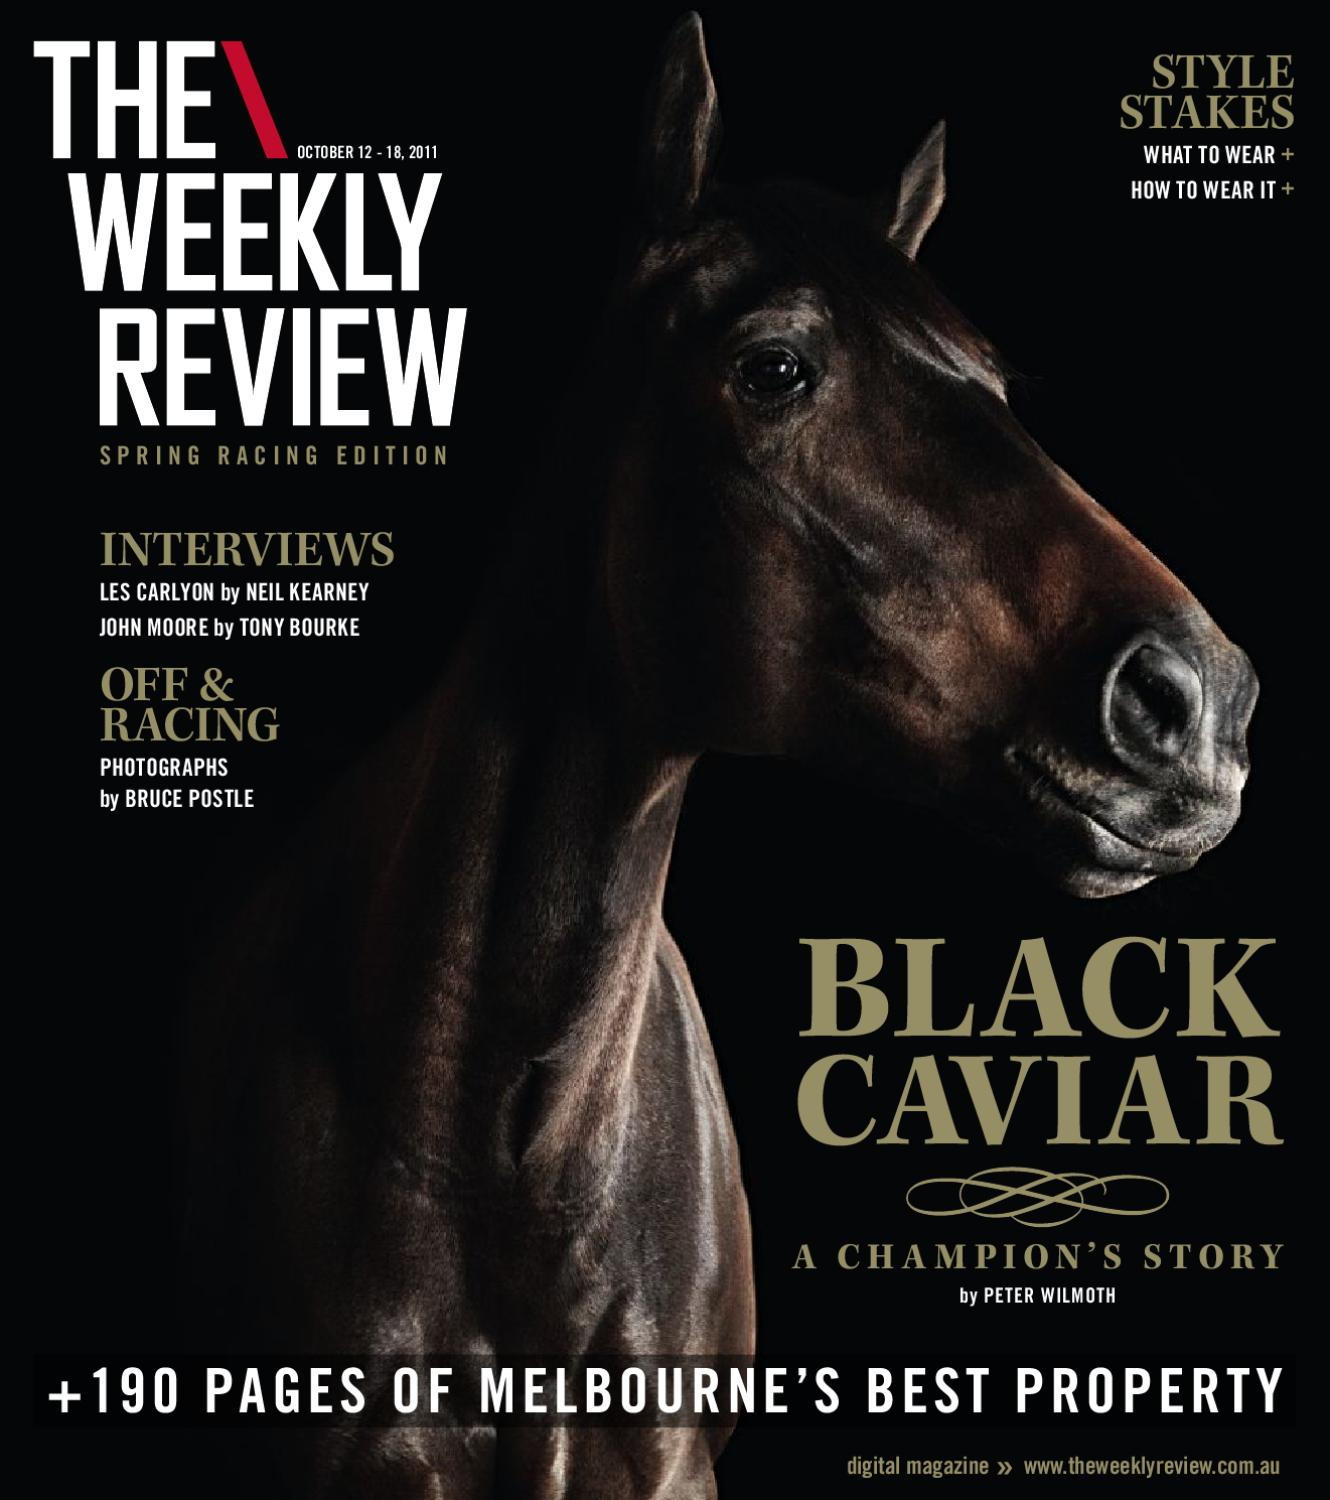 TWR-Stonnington-20111012-Edition73 by The Weekly Review - issuu